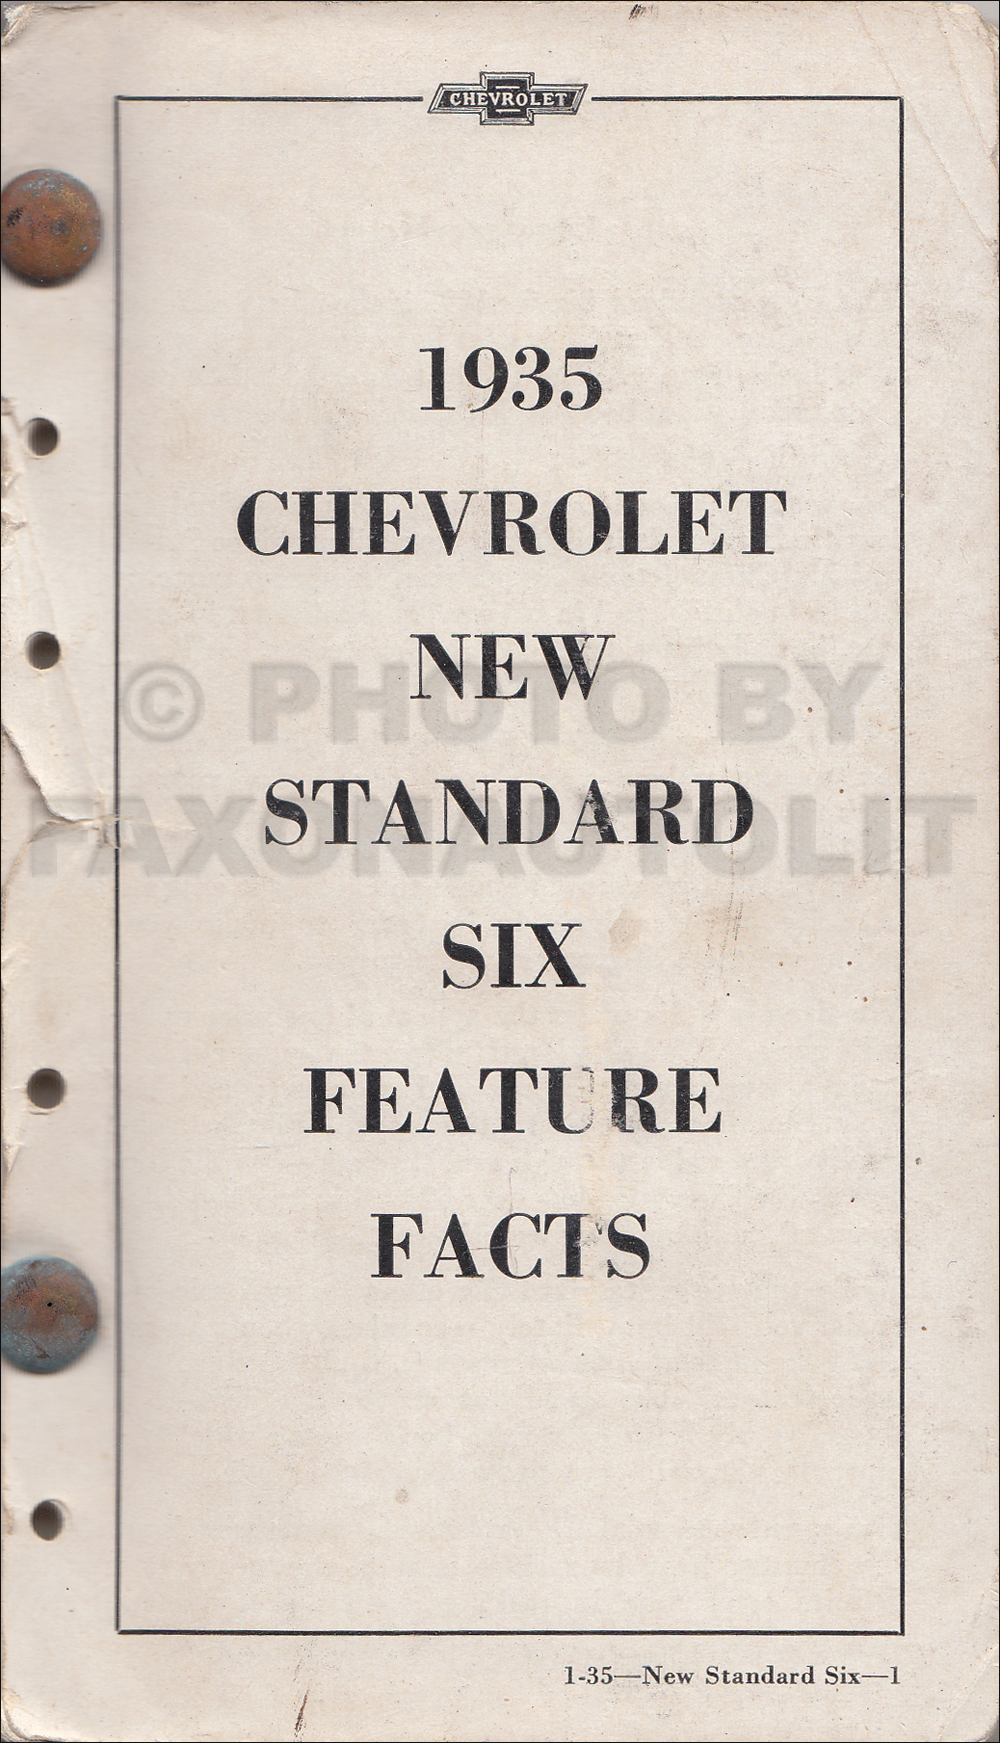 1935 Chevrolet Repair Shop Manual Original Wiring Diagram Car Truck Data Book 19900